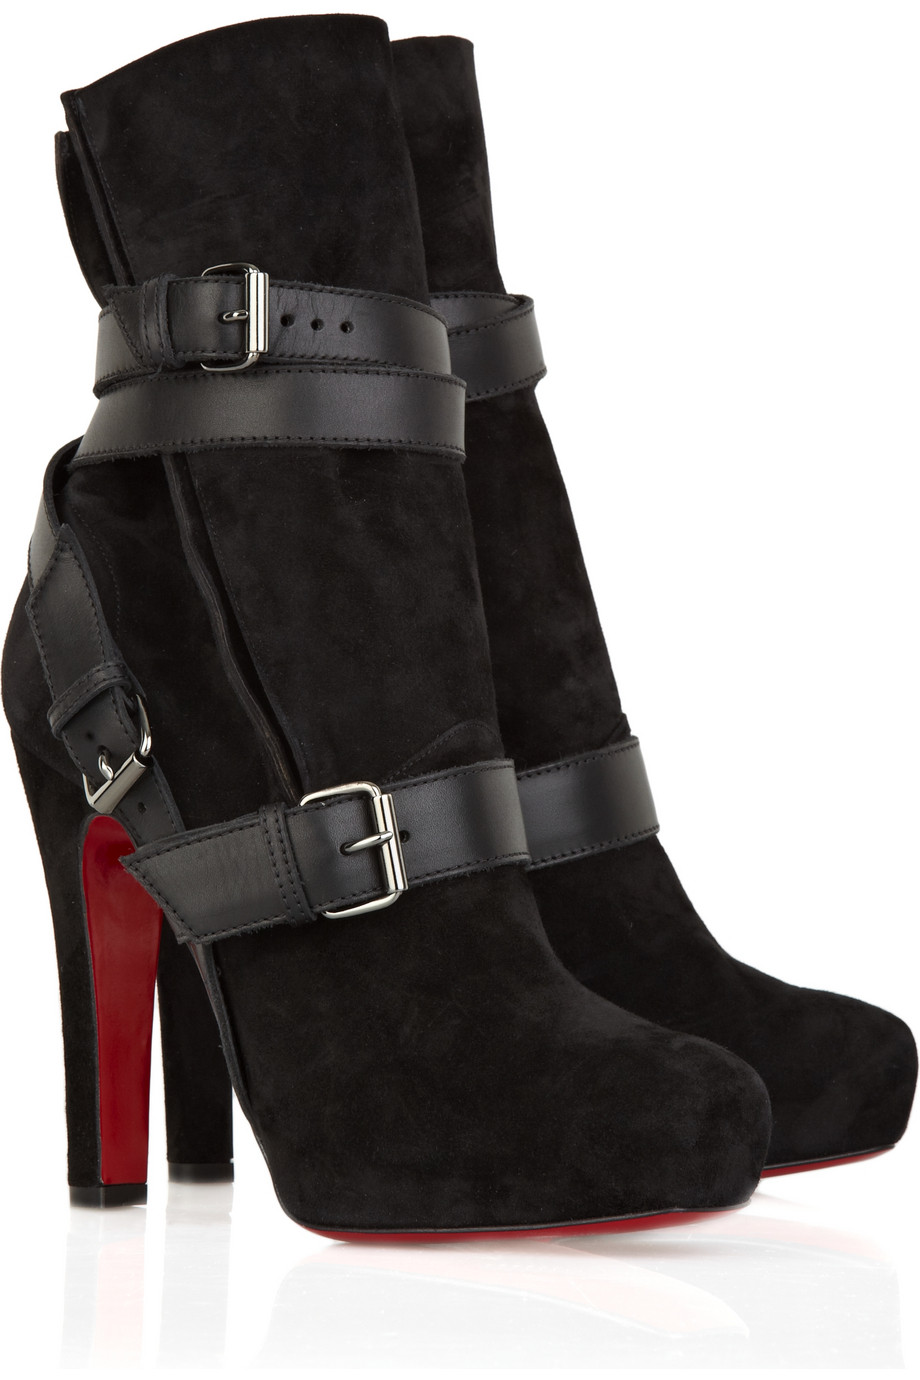 christian louboutin black suede ankle boots - Obsidian Wellness Centre